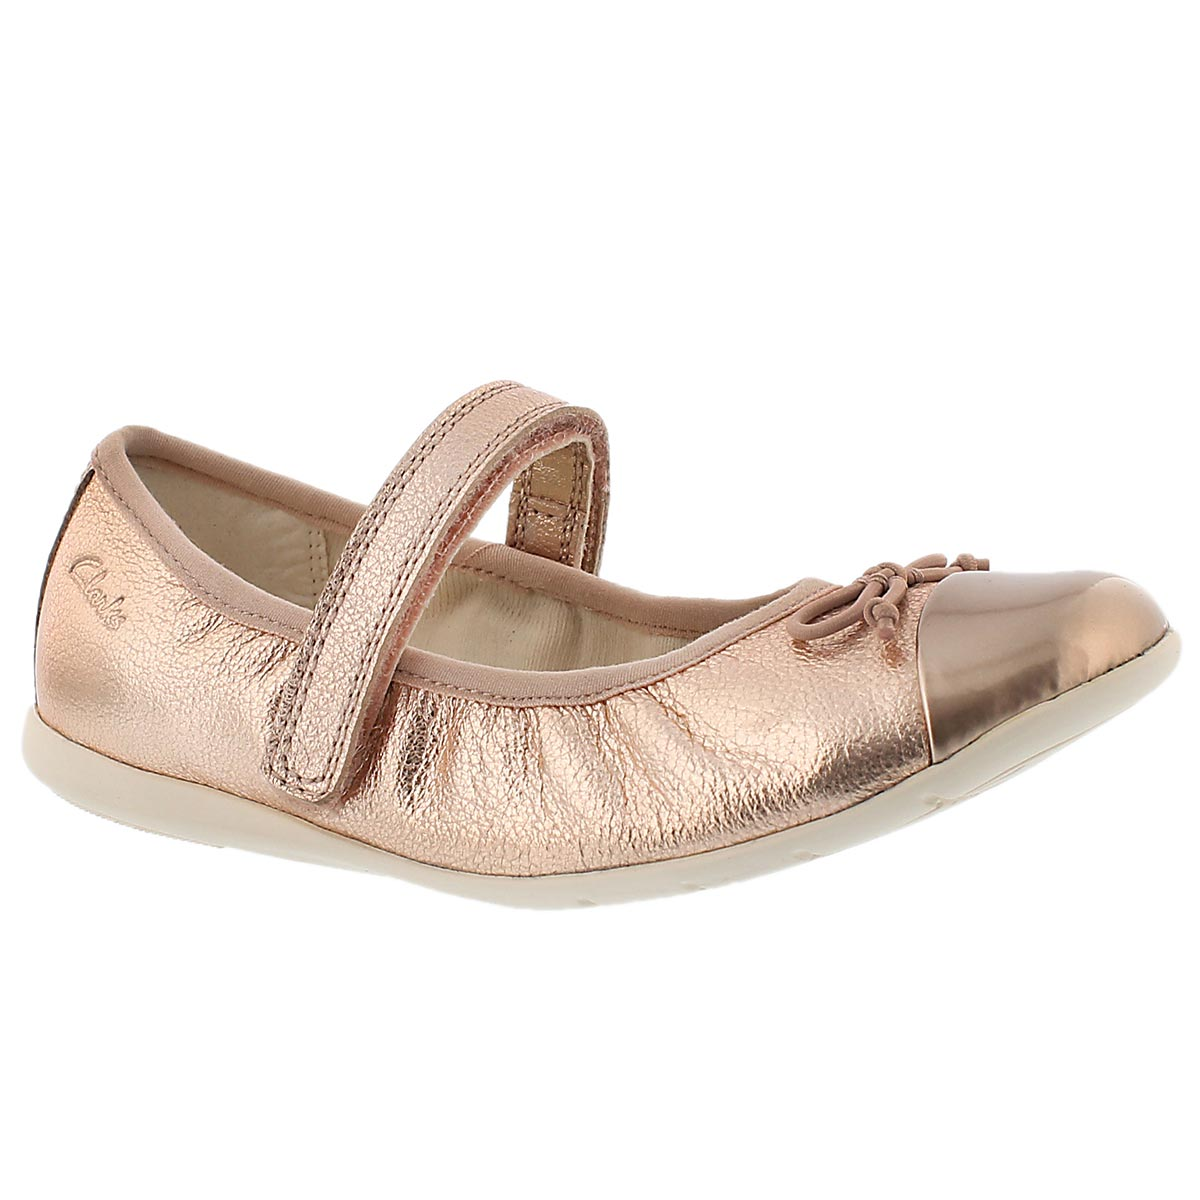 Infs Dance Rosa rose gold mary jane